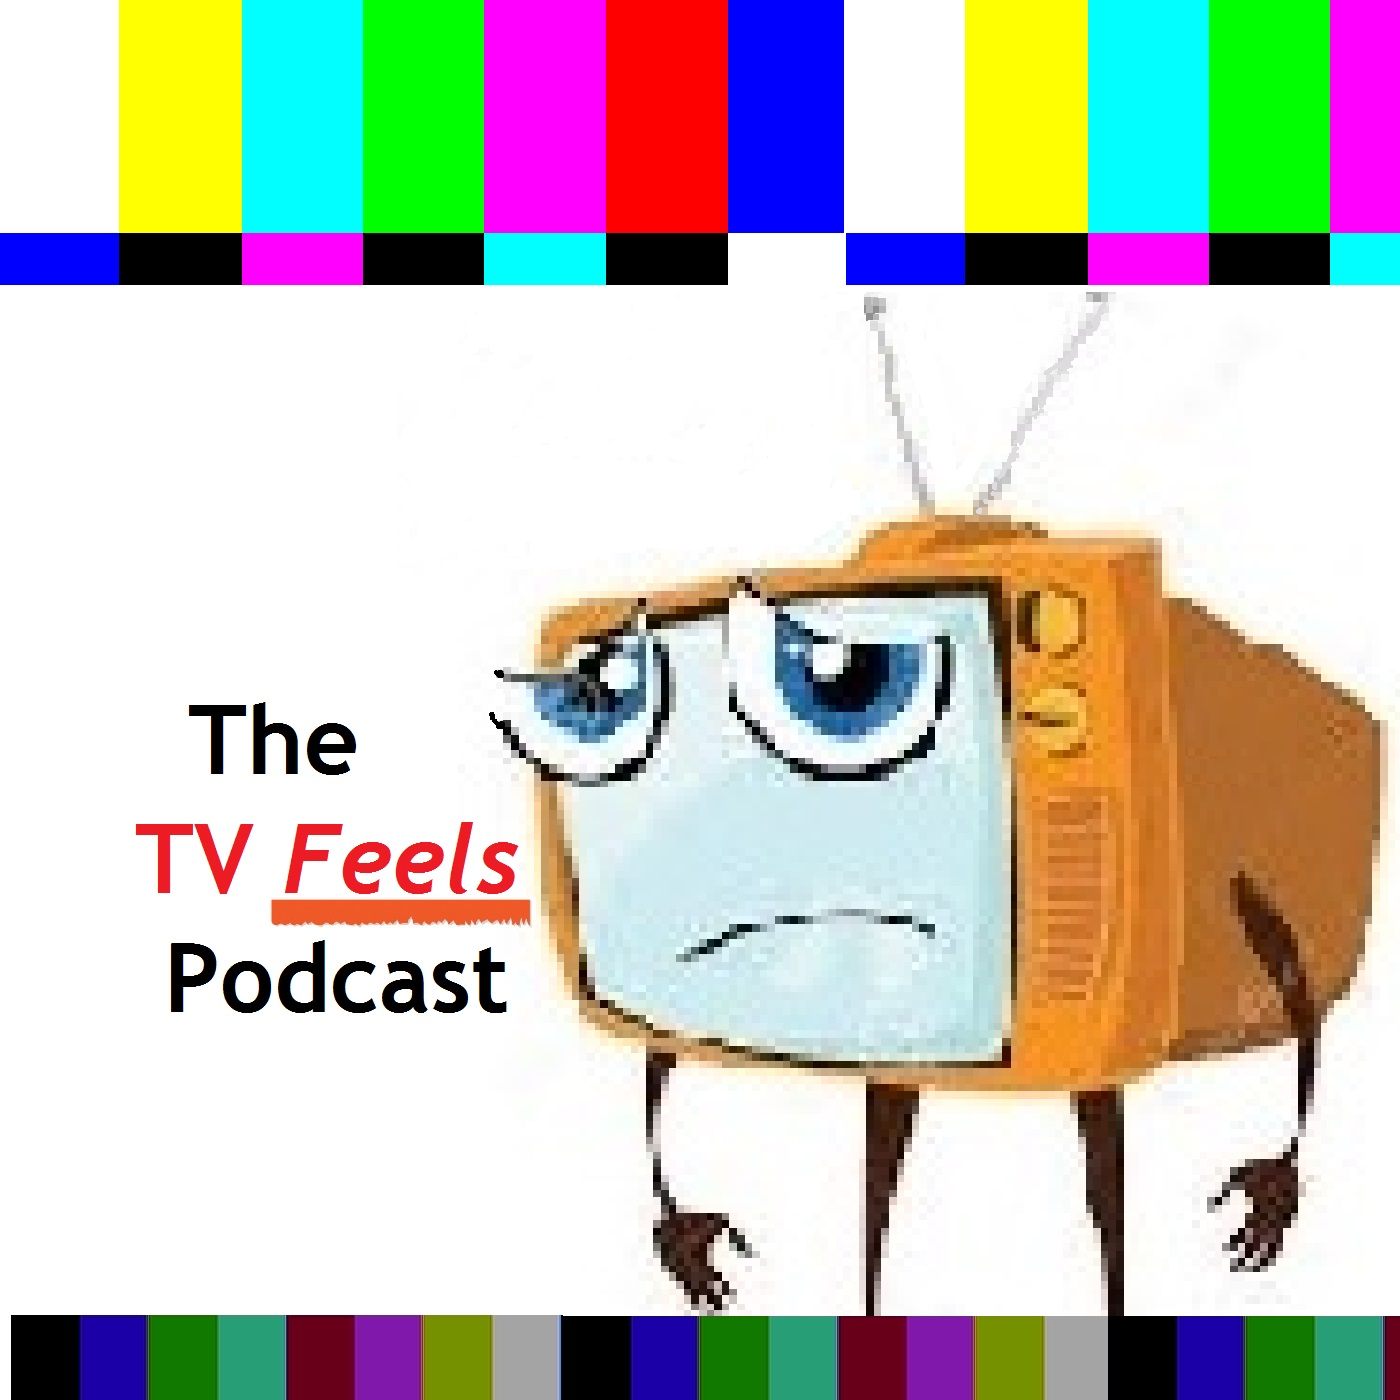 TV FEELS Podcast